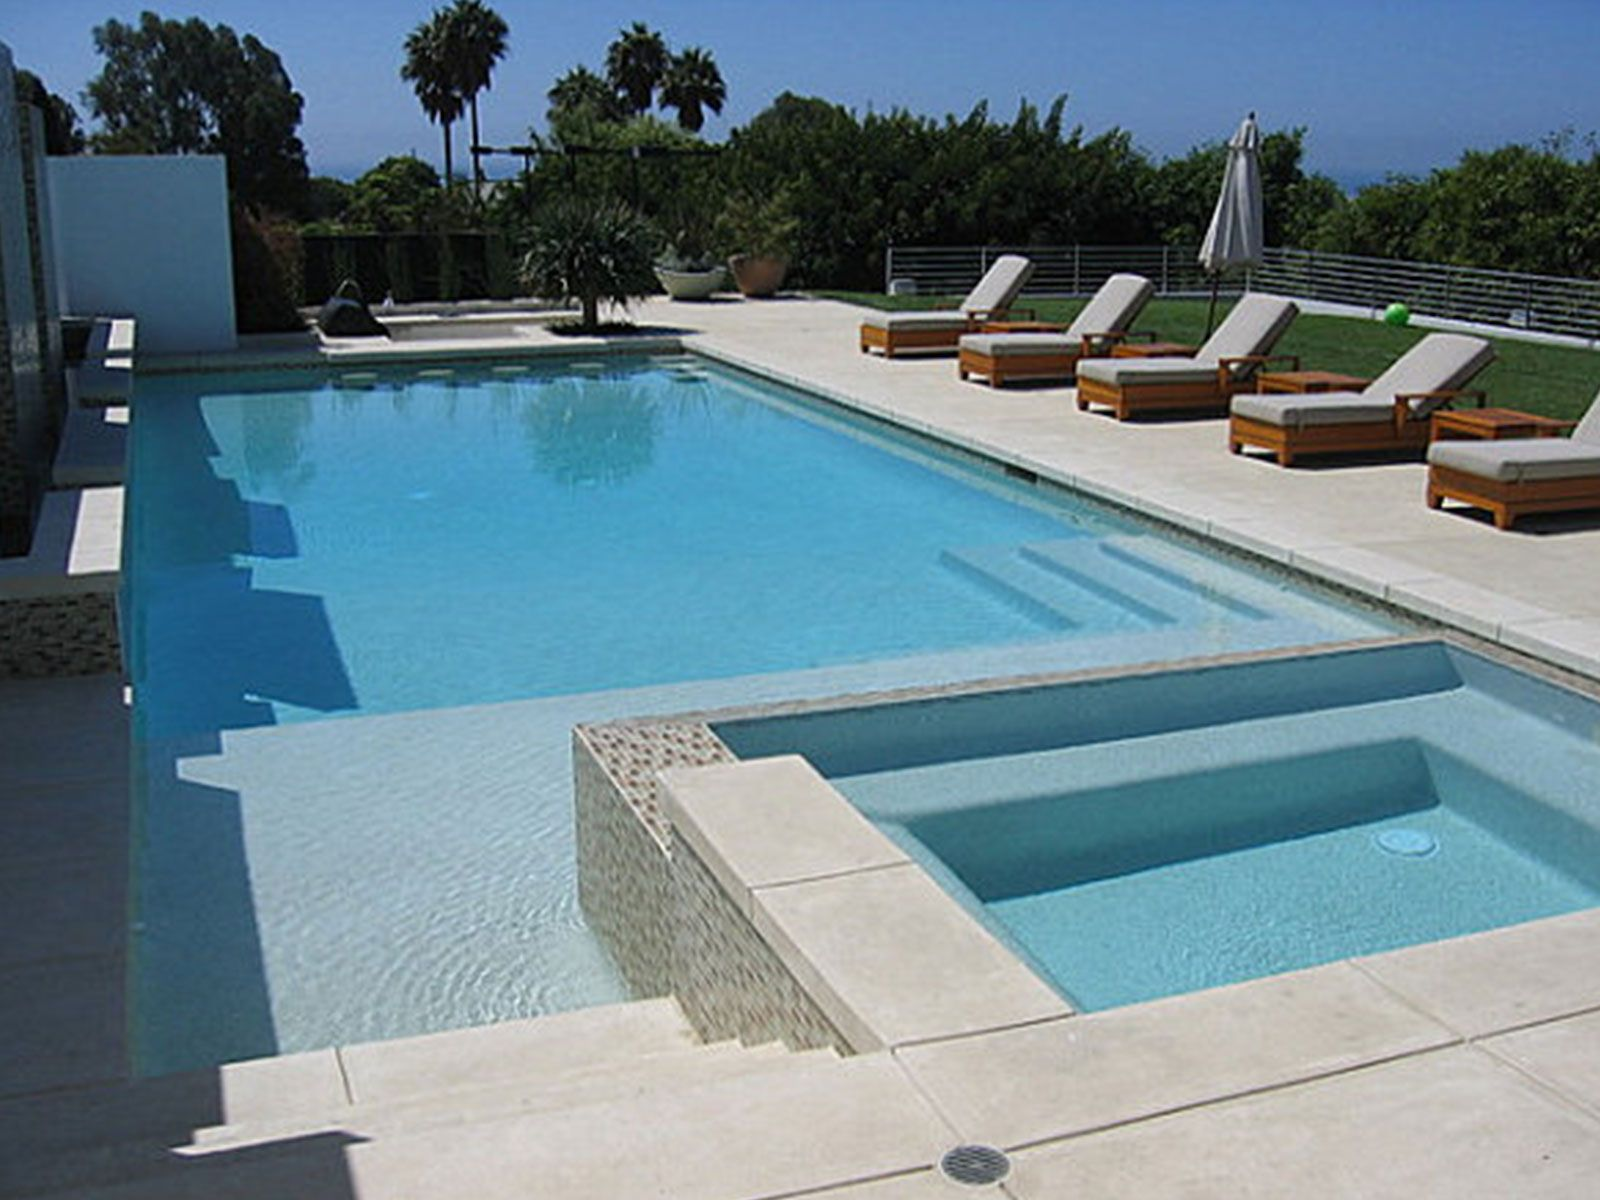 Simple swimming pool design image modern creative swimming for Pool design by poolside